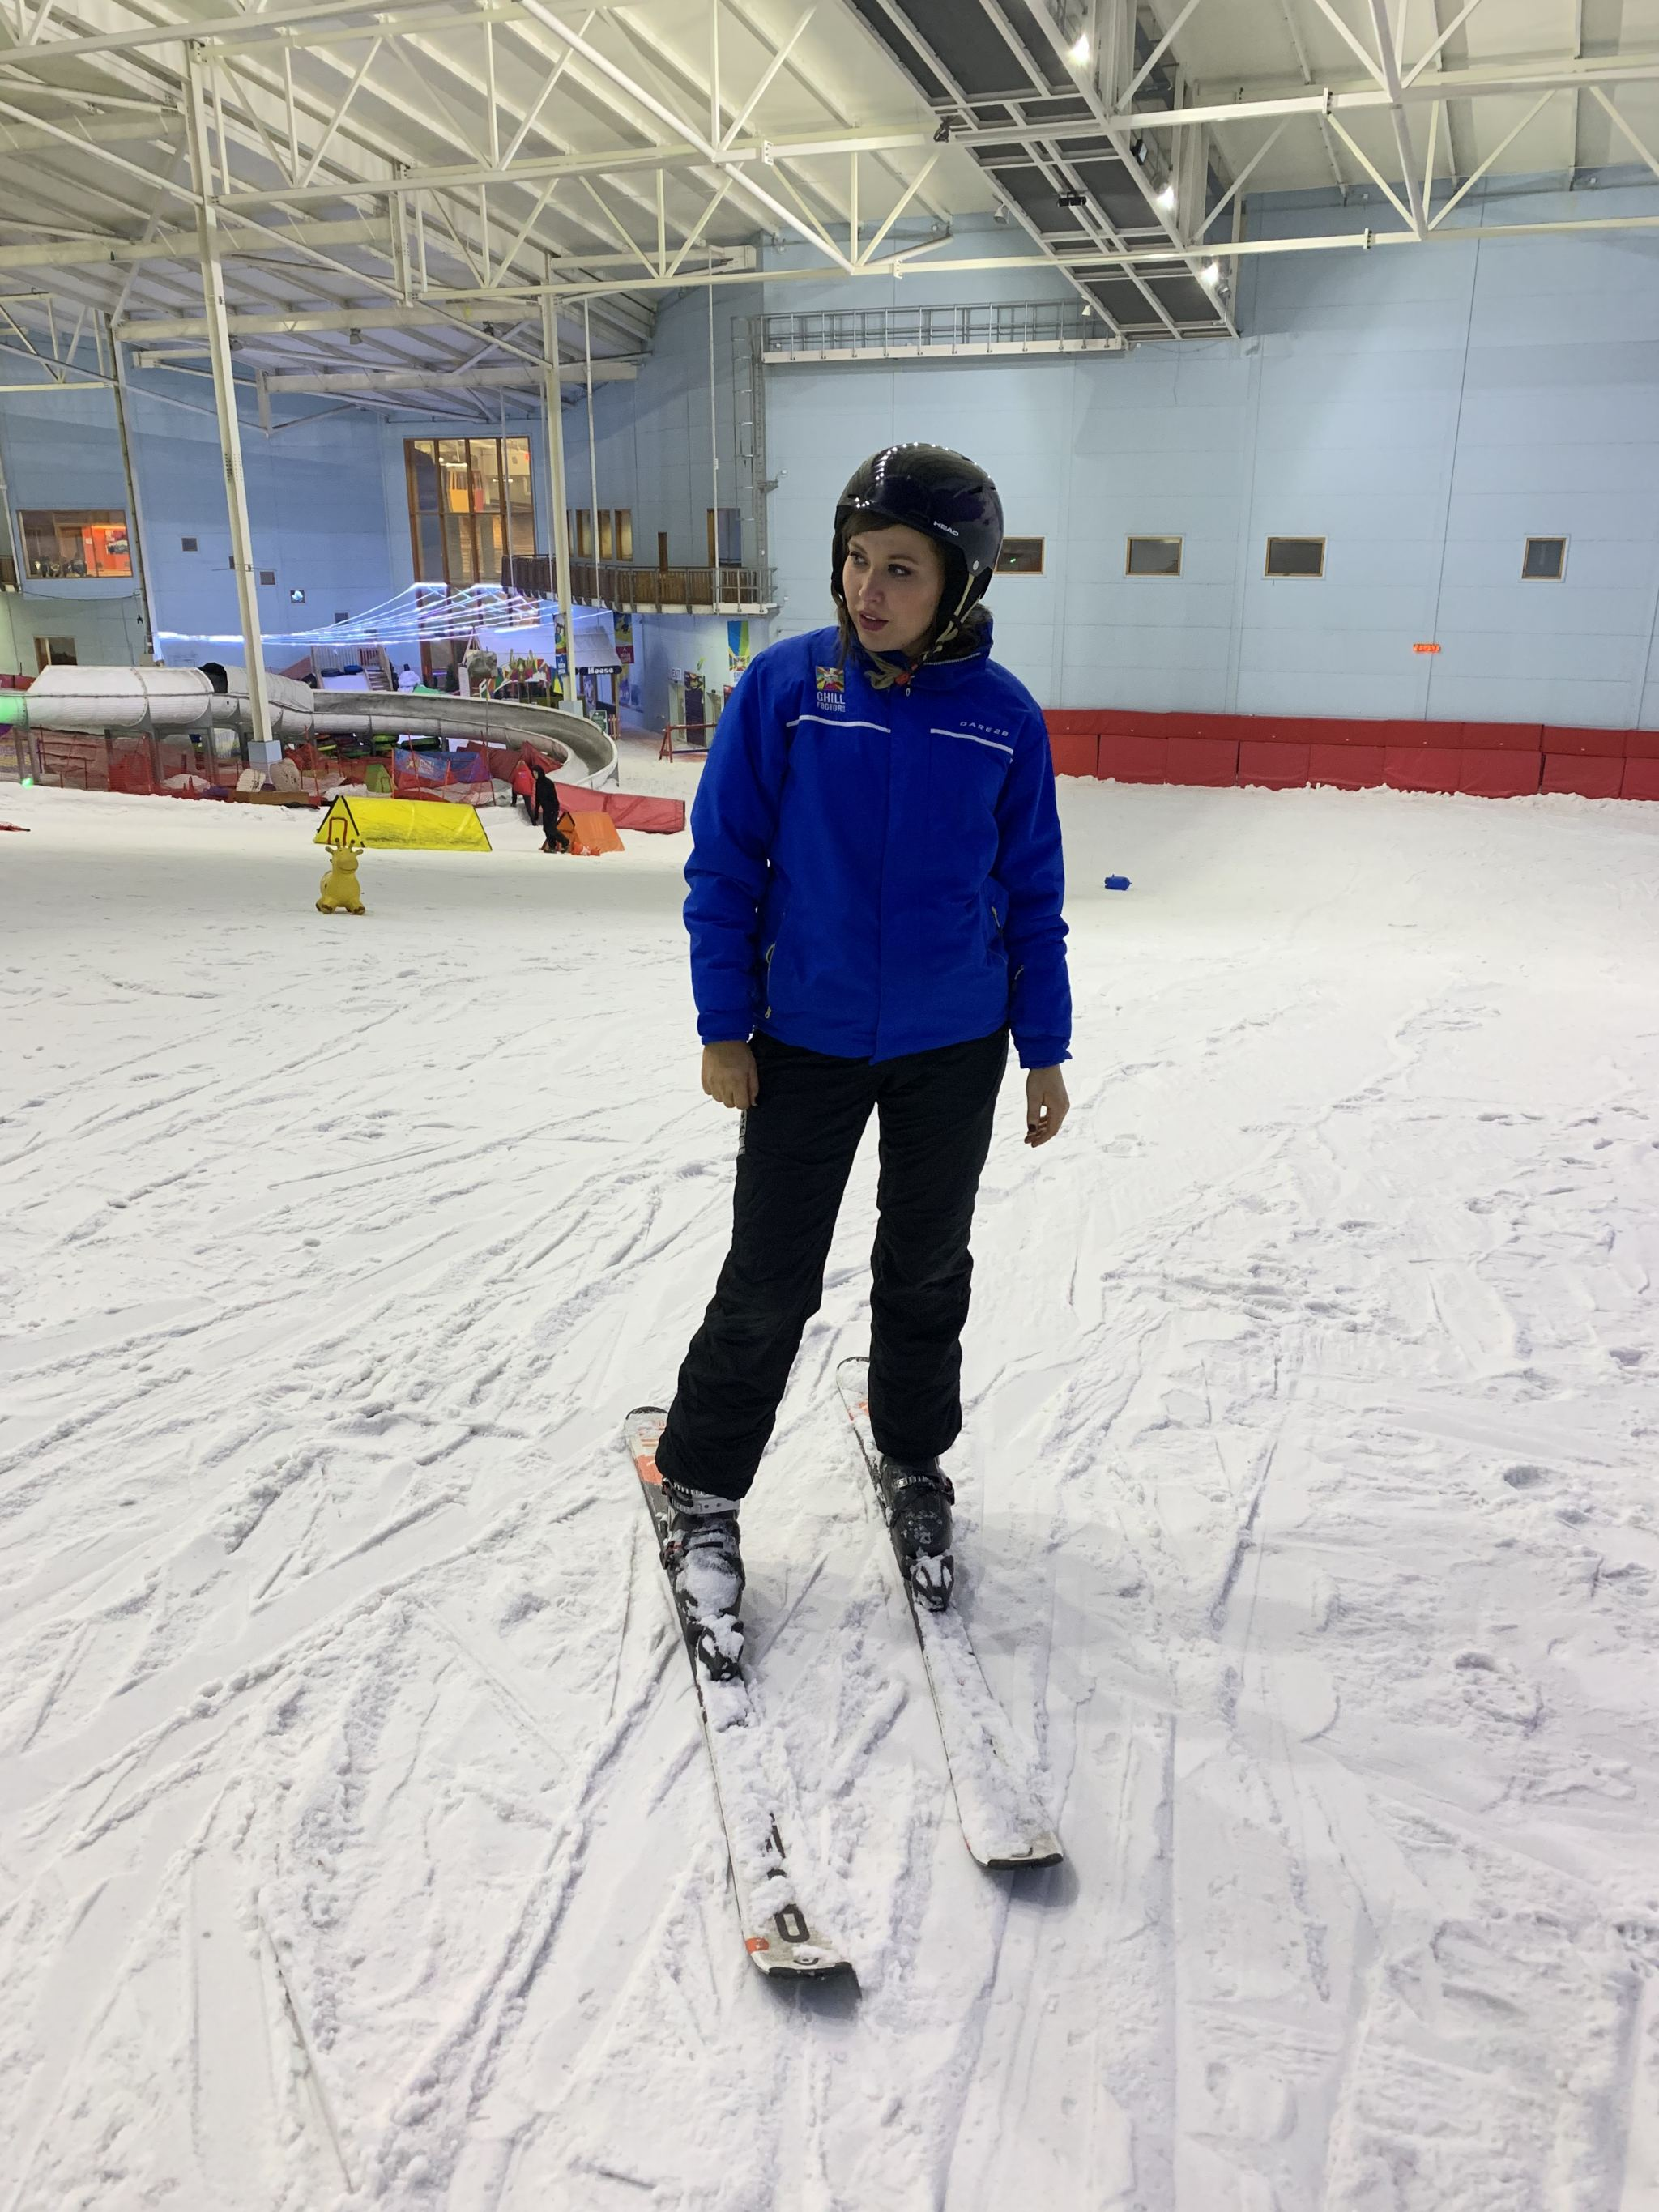 manchester blogger, manchester bloggers, manchester influencers , skiing , skiing course, ski for beginners, ukblogger, blogging , manchester chill factore